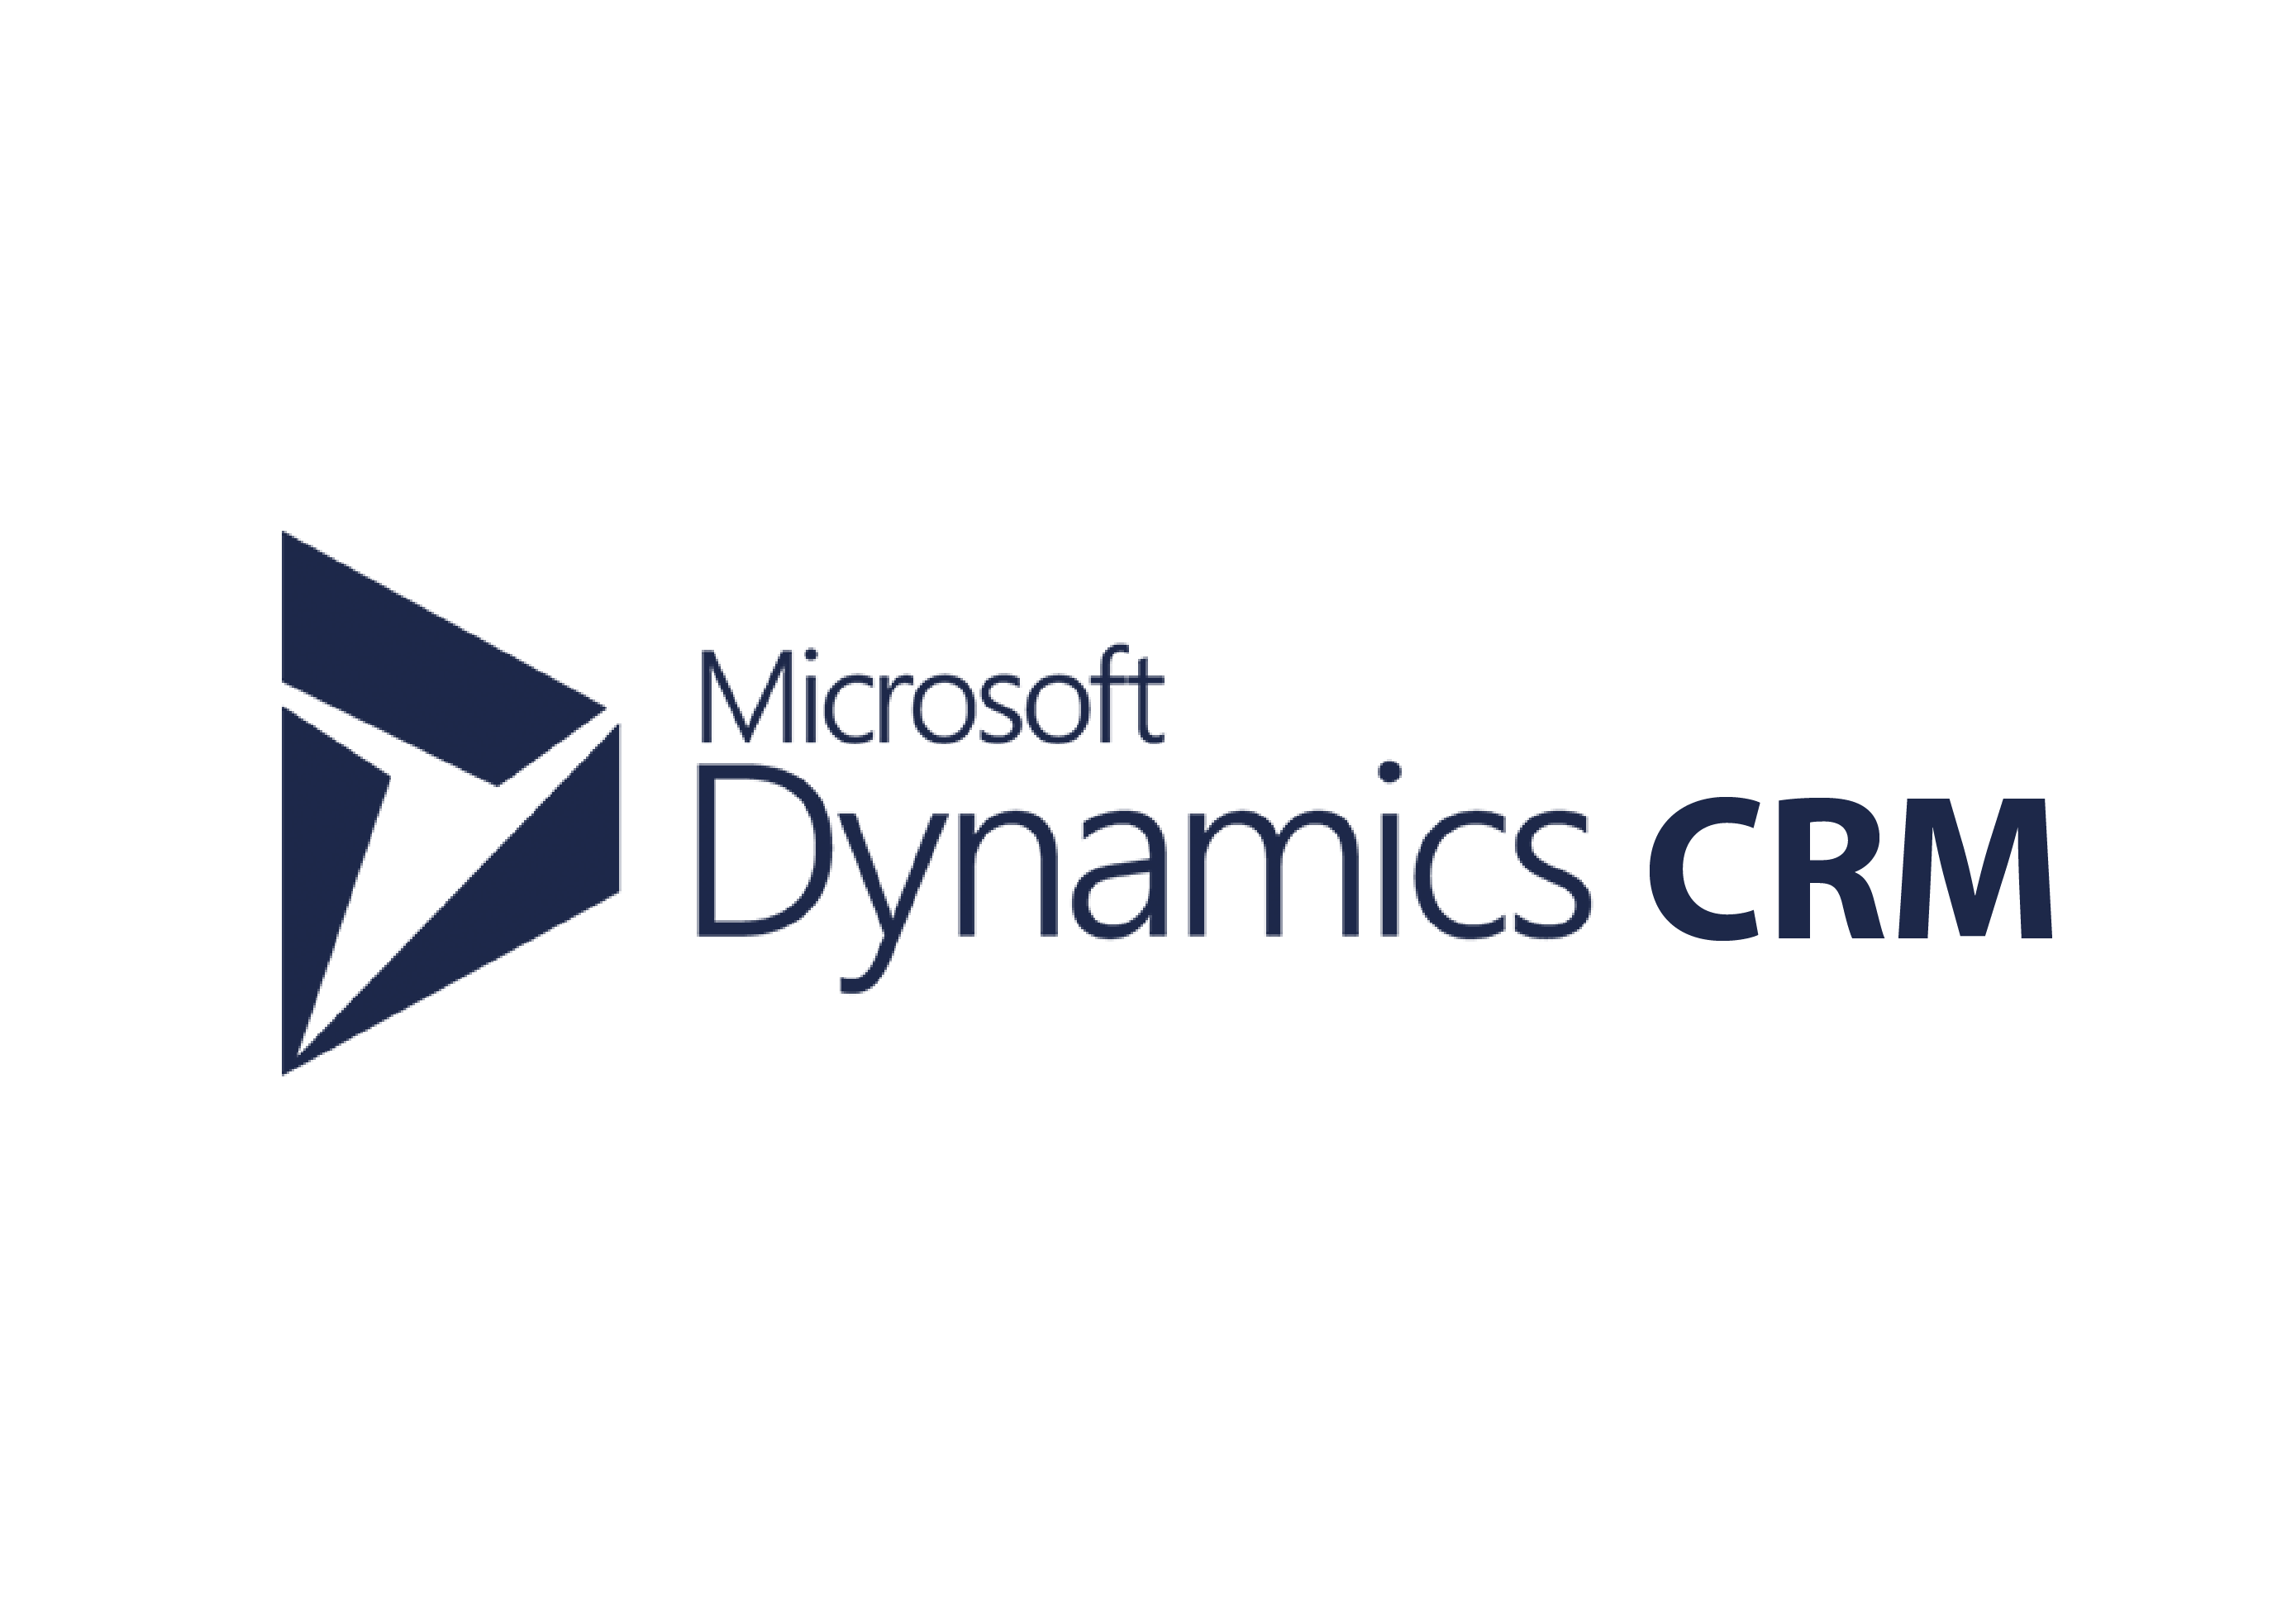 microsoft dynamics crm payment processing